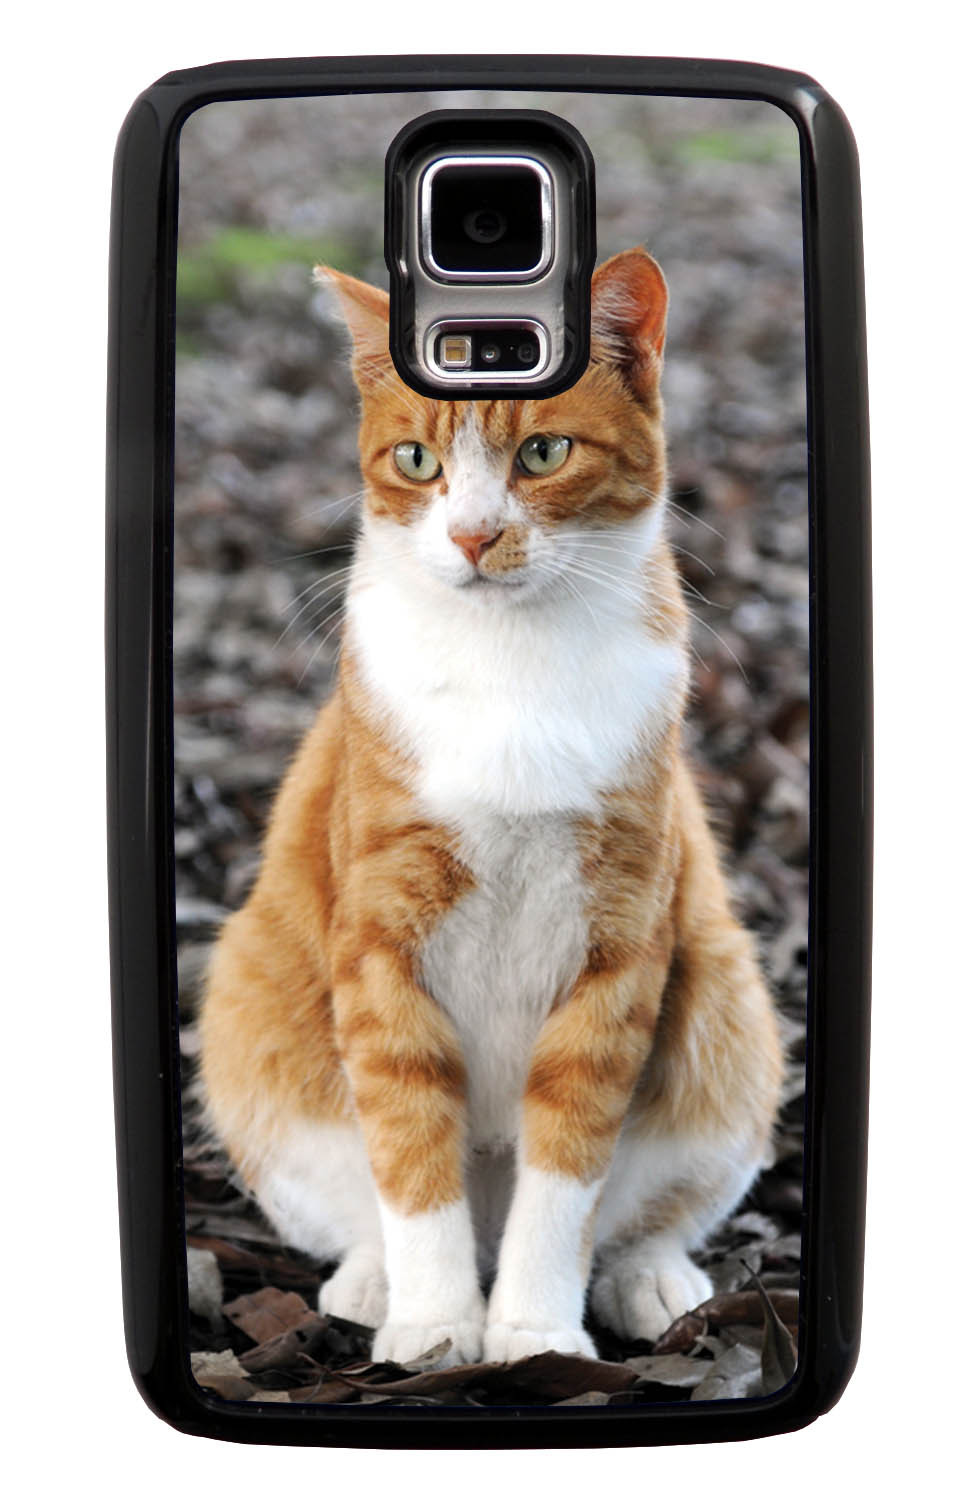 Samsung Galaxy S5 / SV Cat Case - Sitting Cat Photo